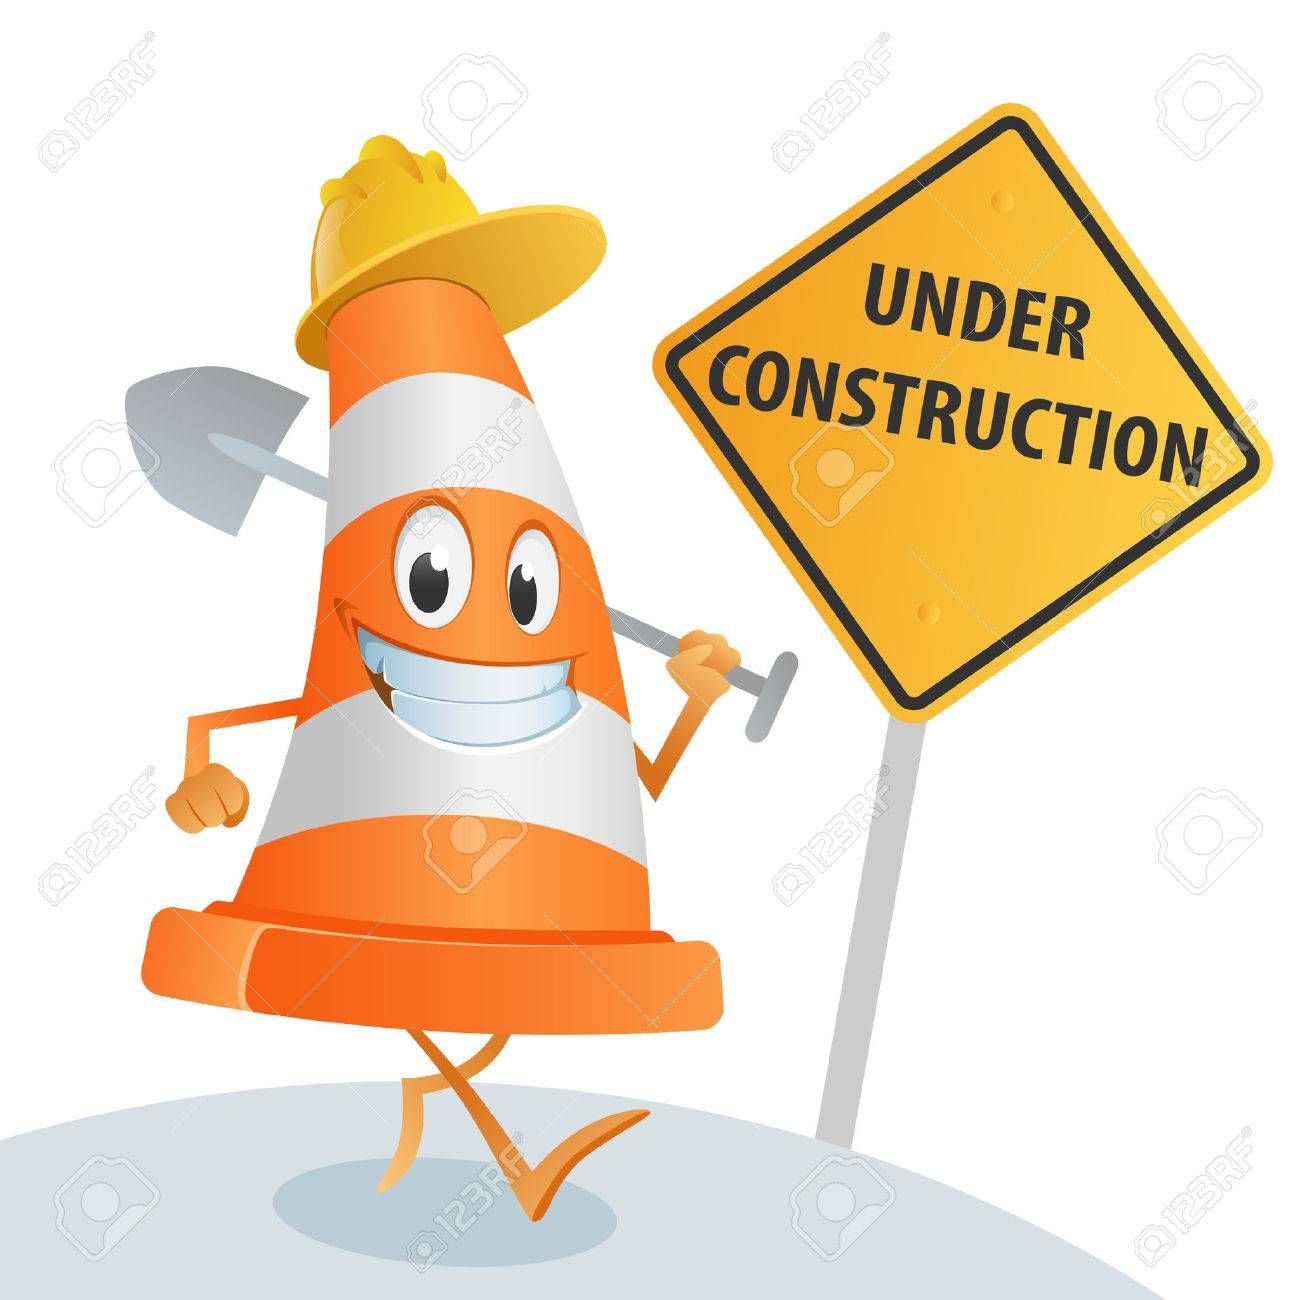 Sympathetic cone with a spade in his hand, and a sign under construction - 44068179